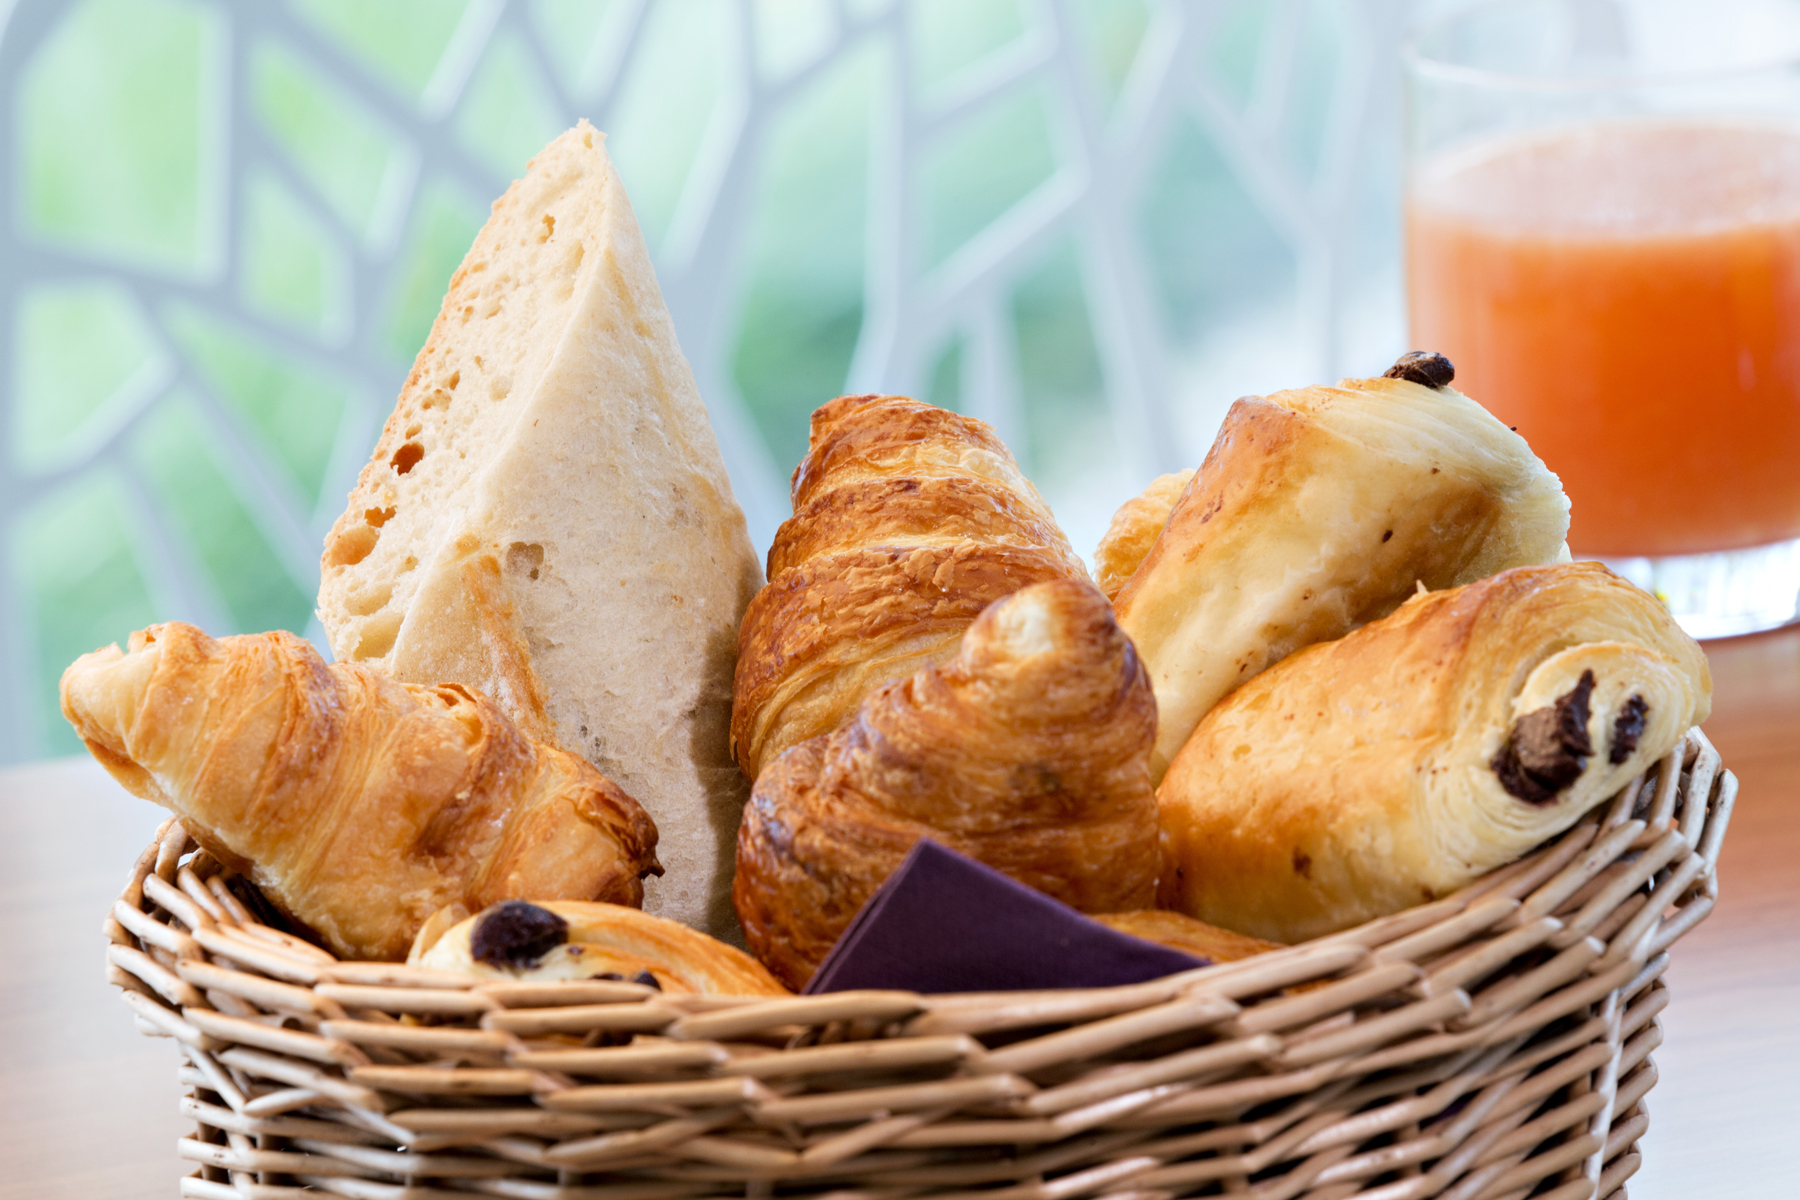 Best Western Plus Paris Vélizy continental breakfast in room